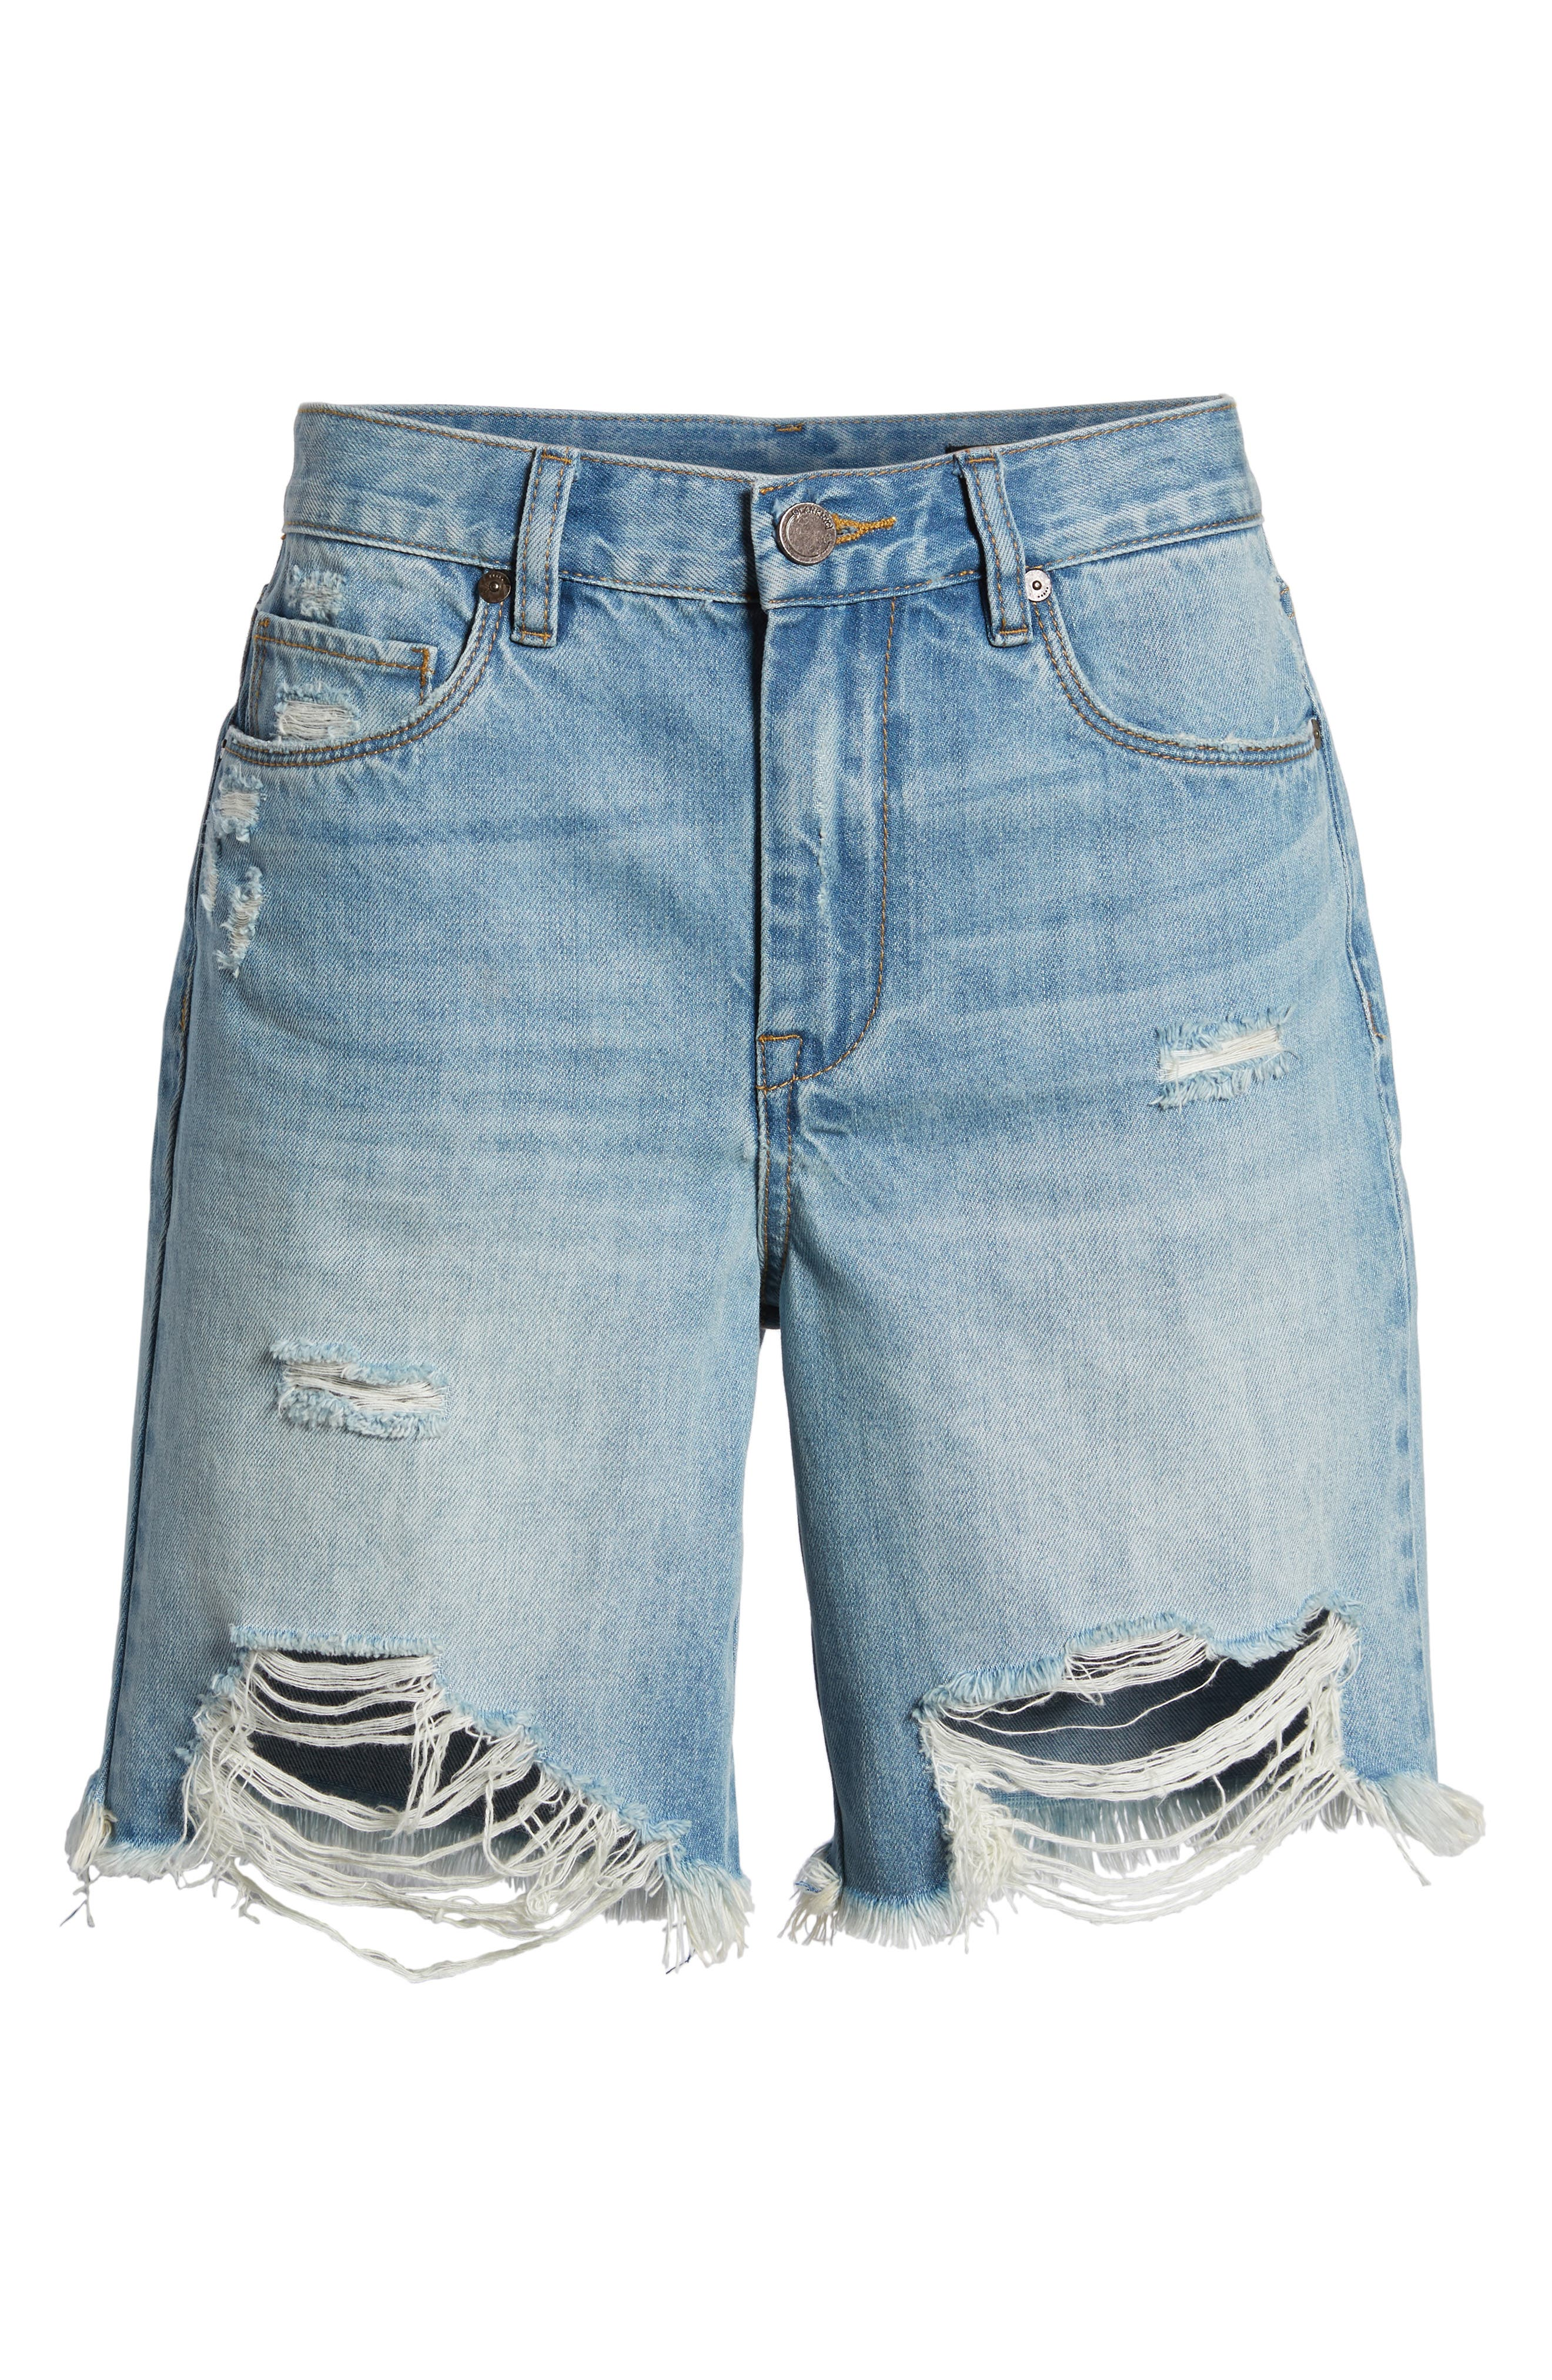 Ripped Denim Shorts,                             Alternate thumbnail 7, color,                             400